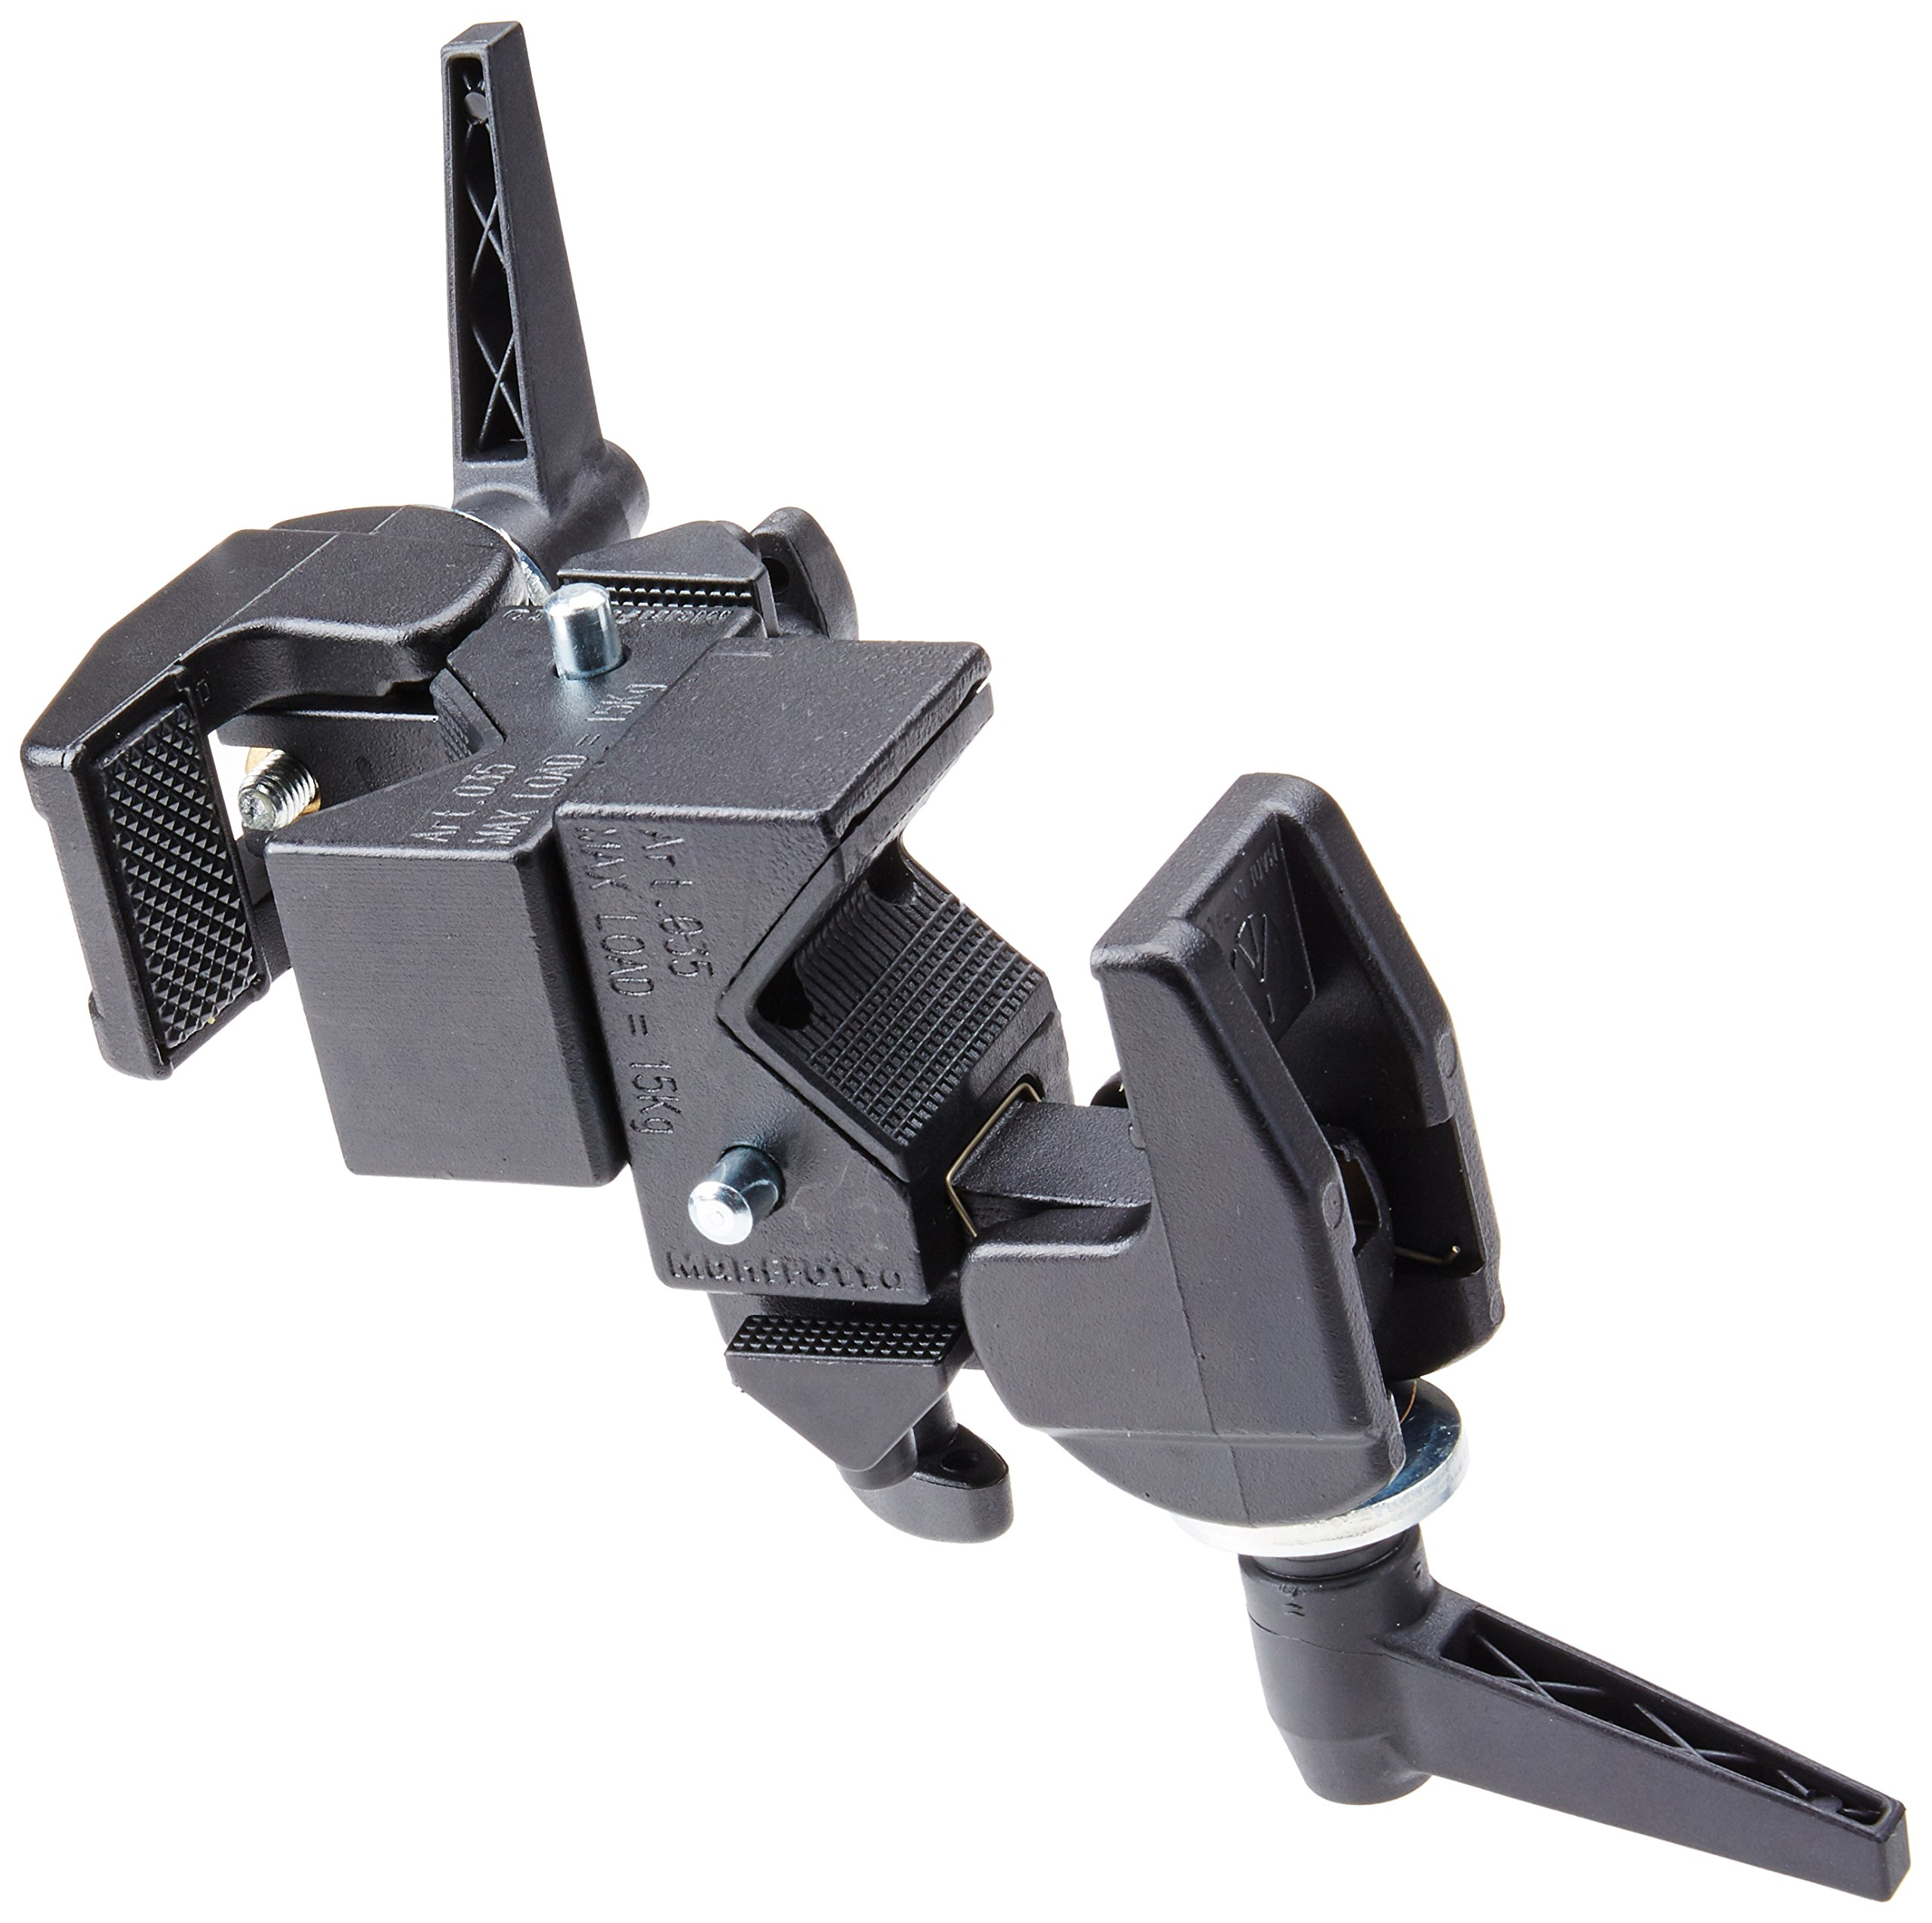 Manfrotto 038 Double Super Clamp by Manfrotto